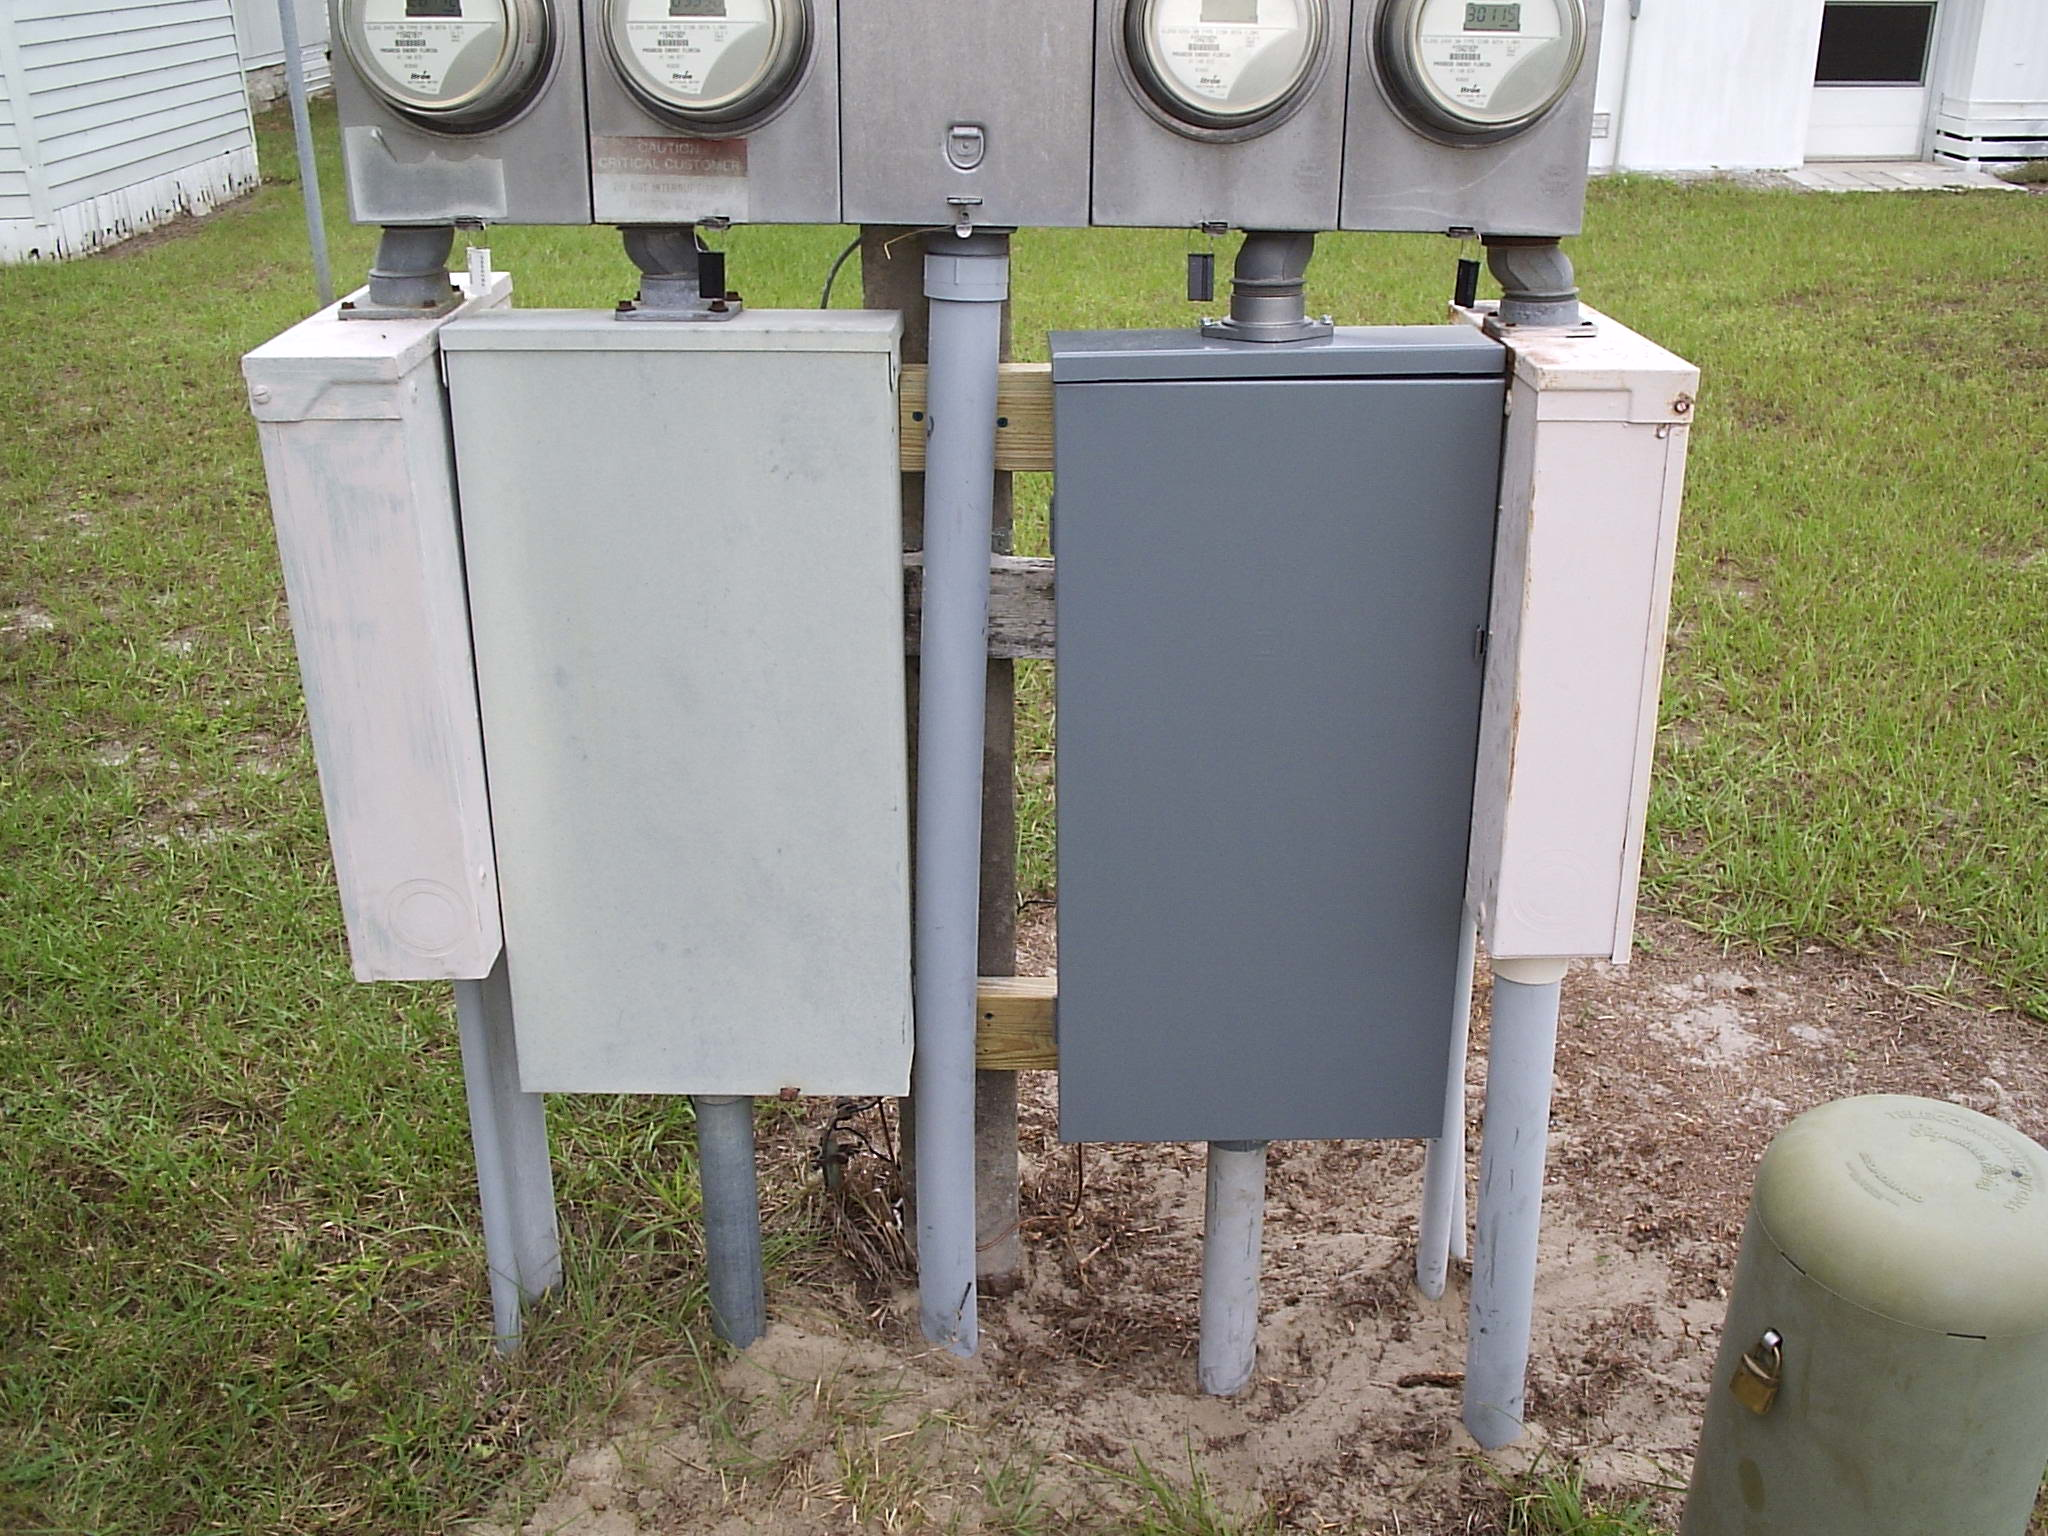 House Fuse Box Got Wet : Electrical panel box outdoor gold load center